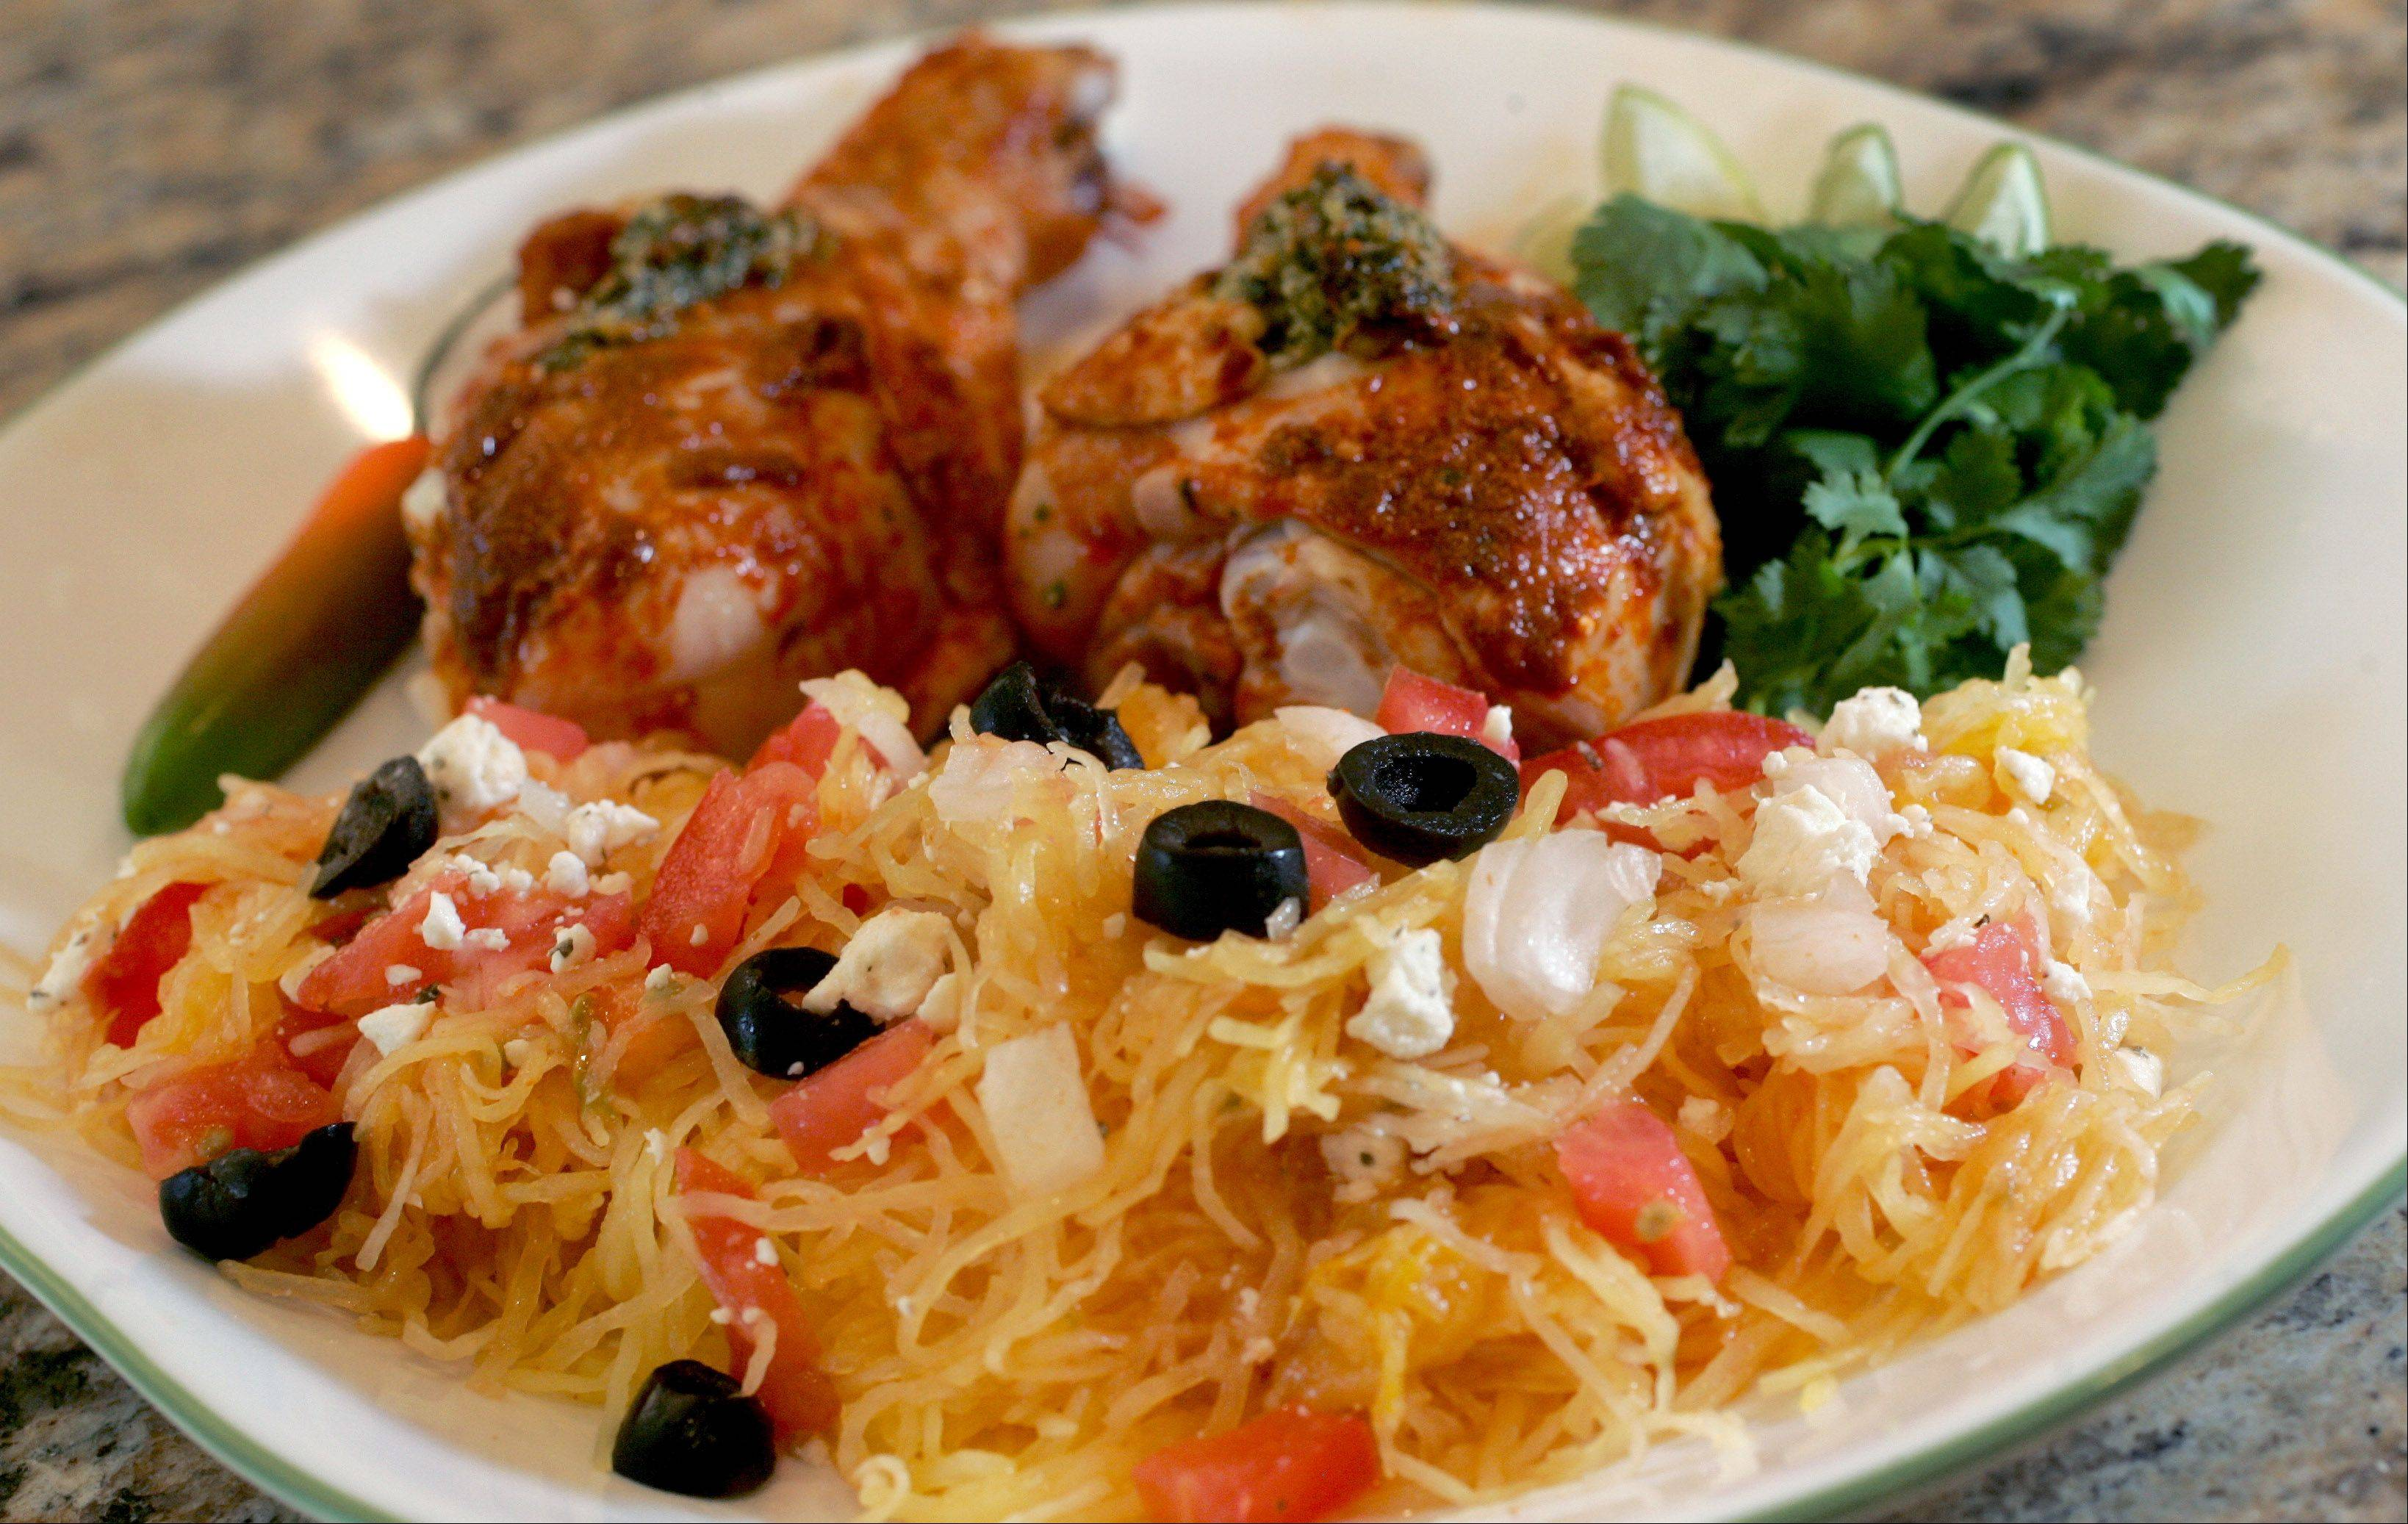 Marie Evangelista used jarred salsa, chicken legs, spaghetti squash and pepitas to create this dish.